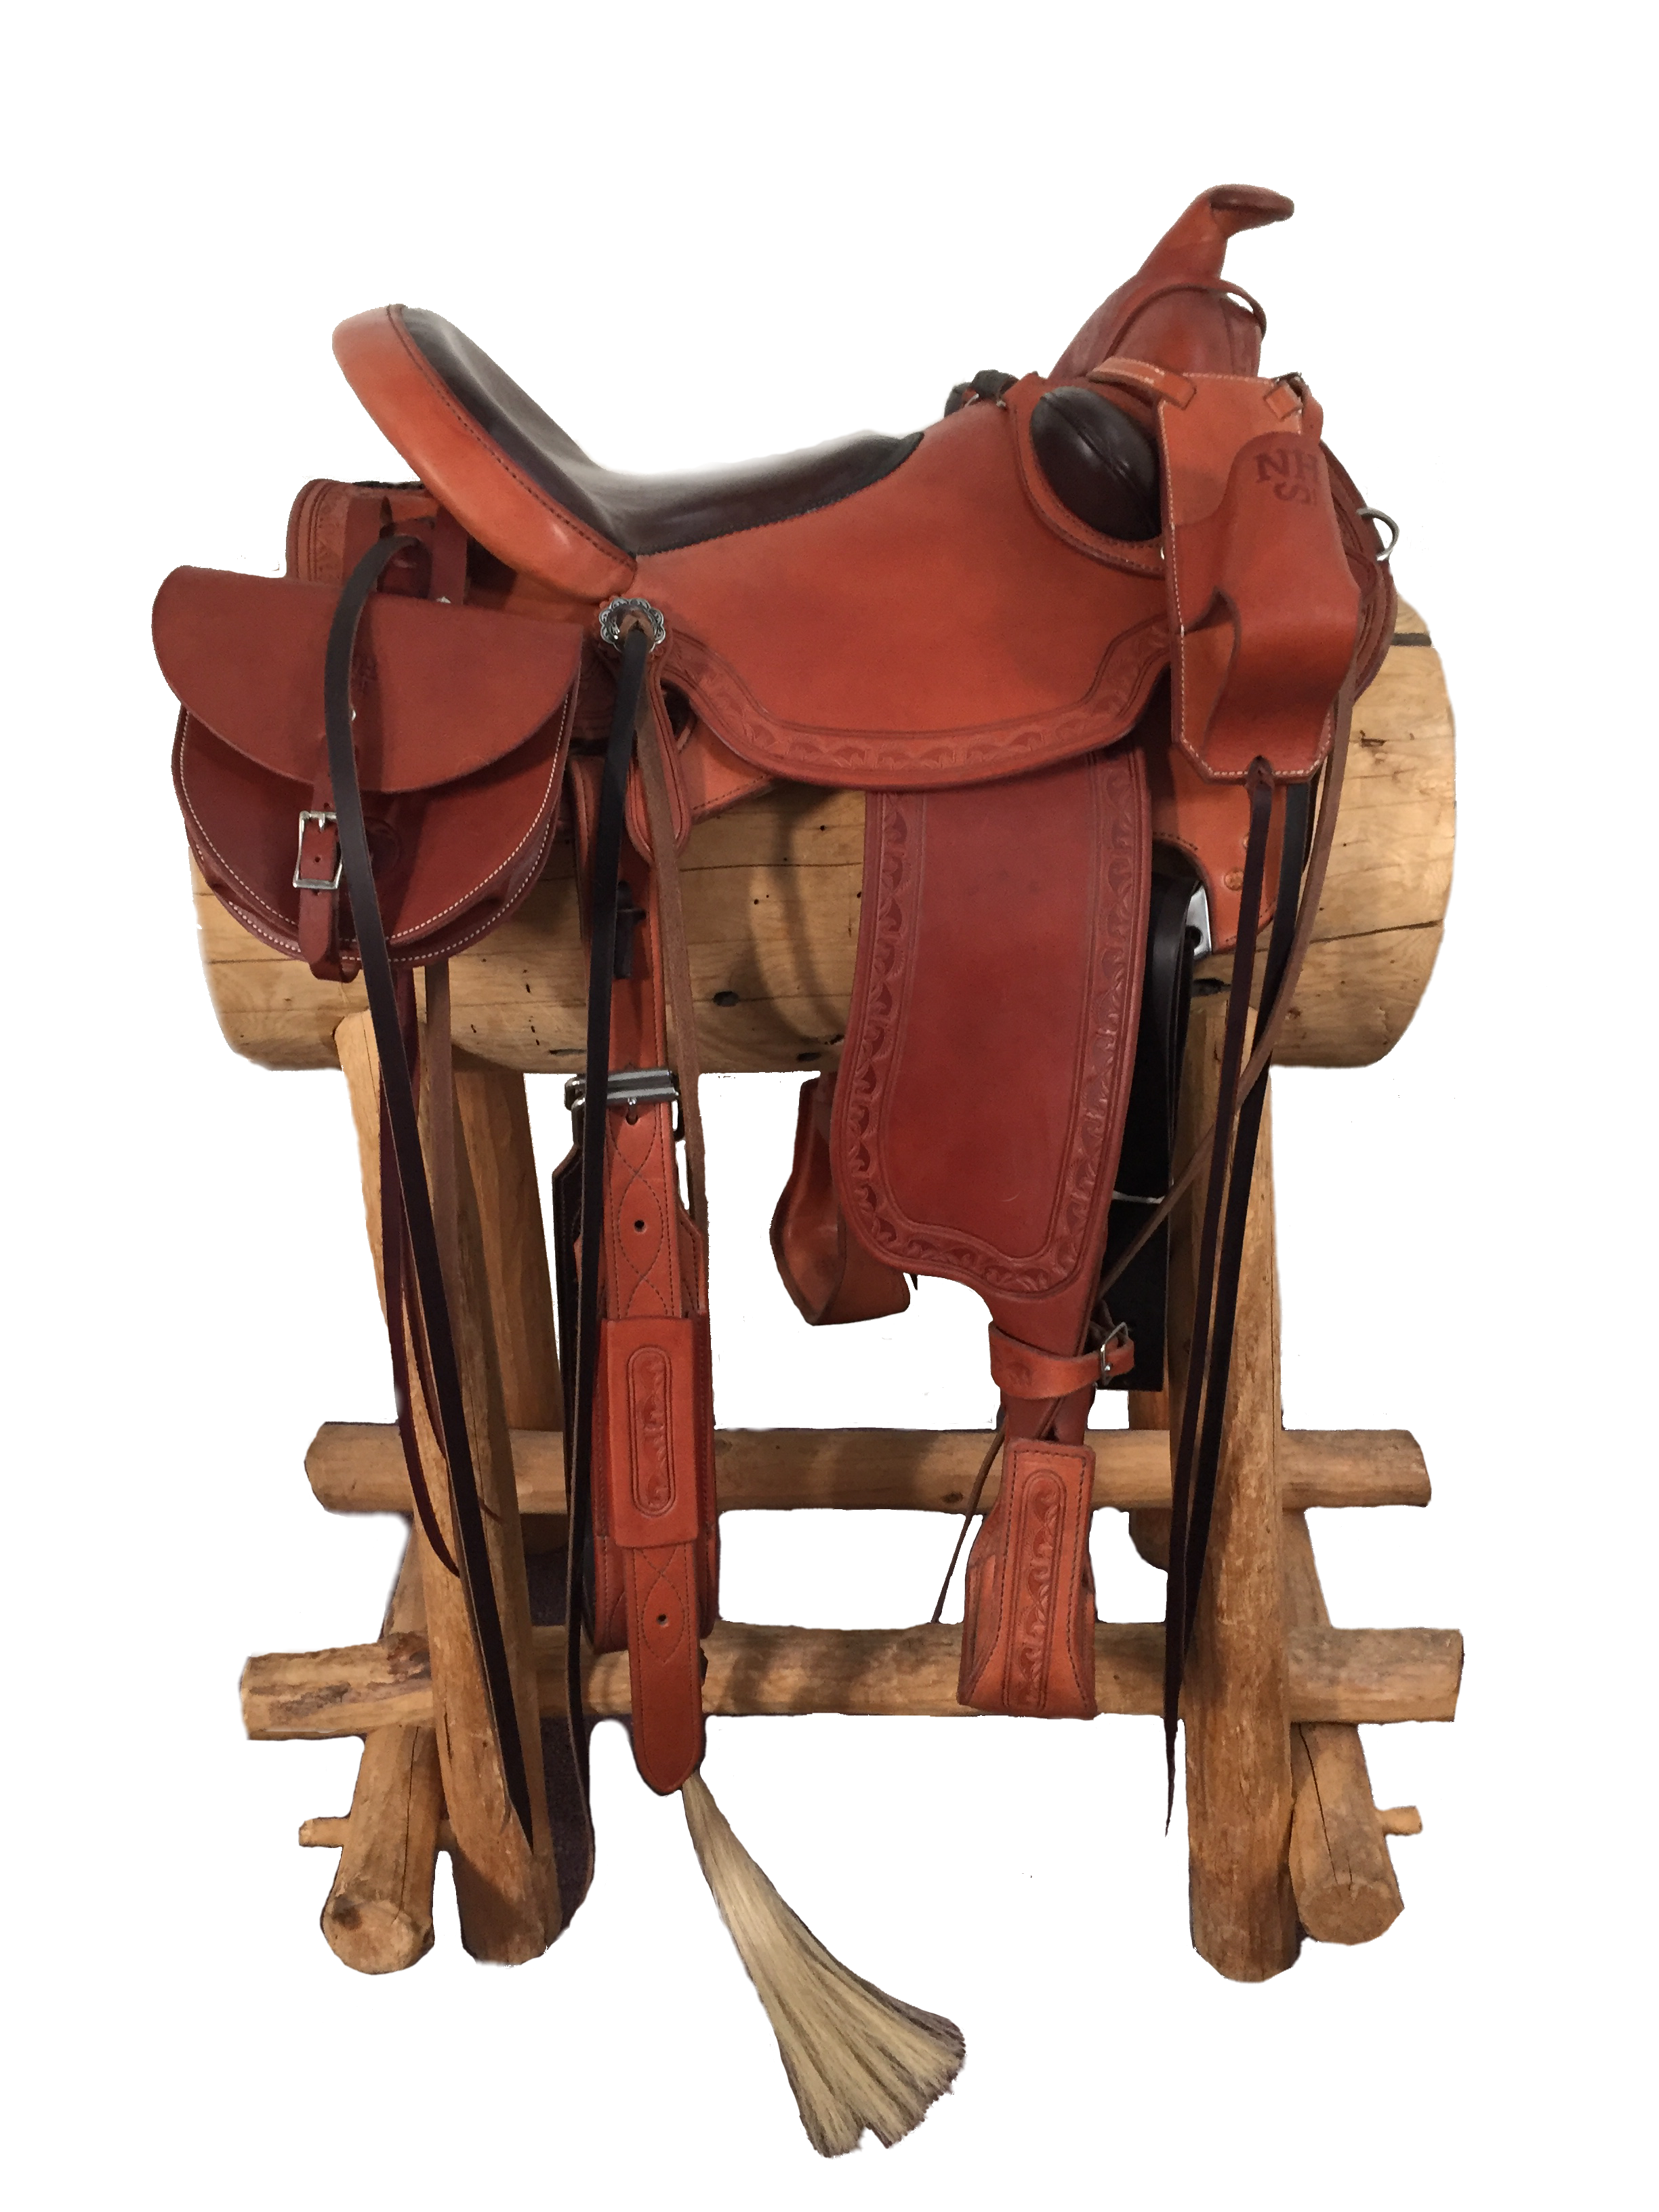 This is our Easy Rider Western Saddle - complete with Buckrolls